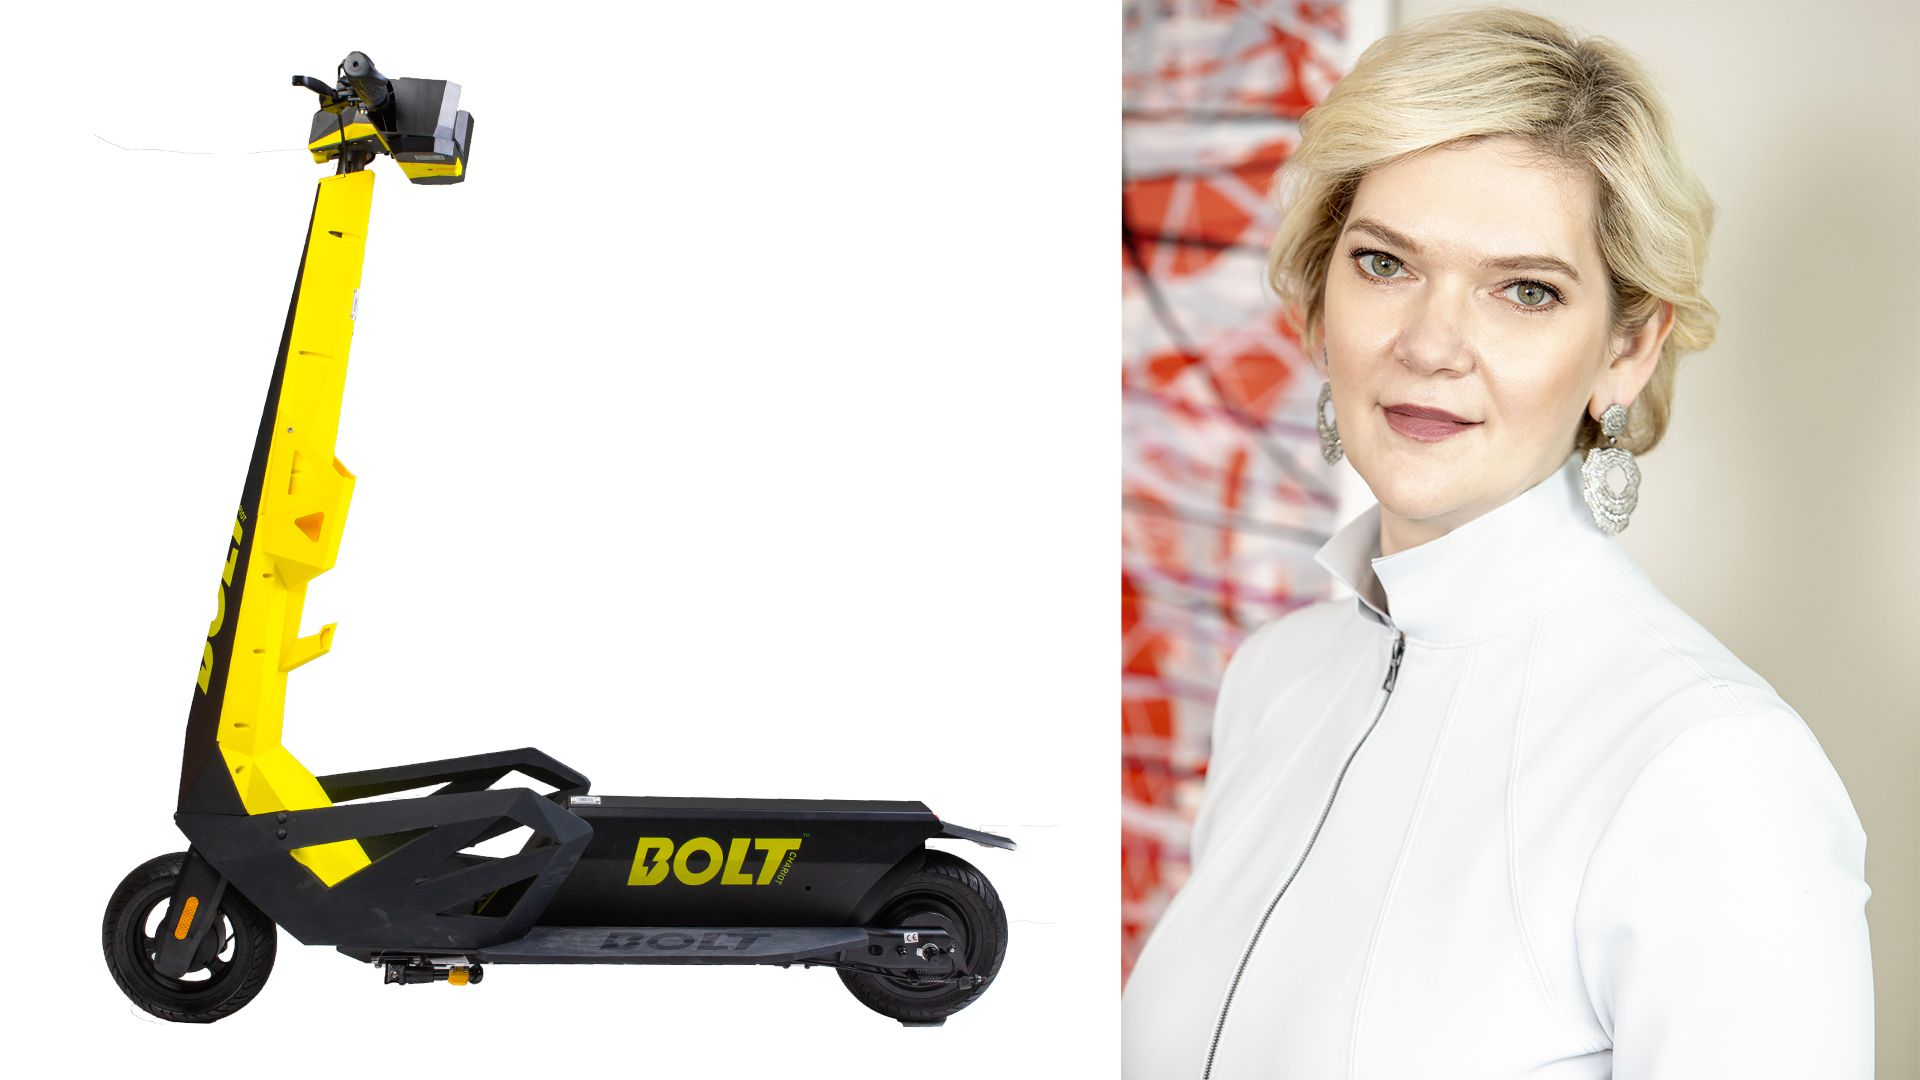 Photo collage of CEO Julia Steyn and a Bolt scooter